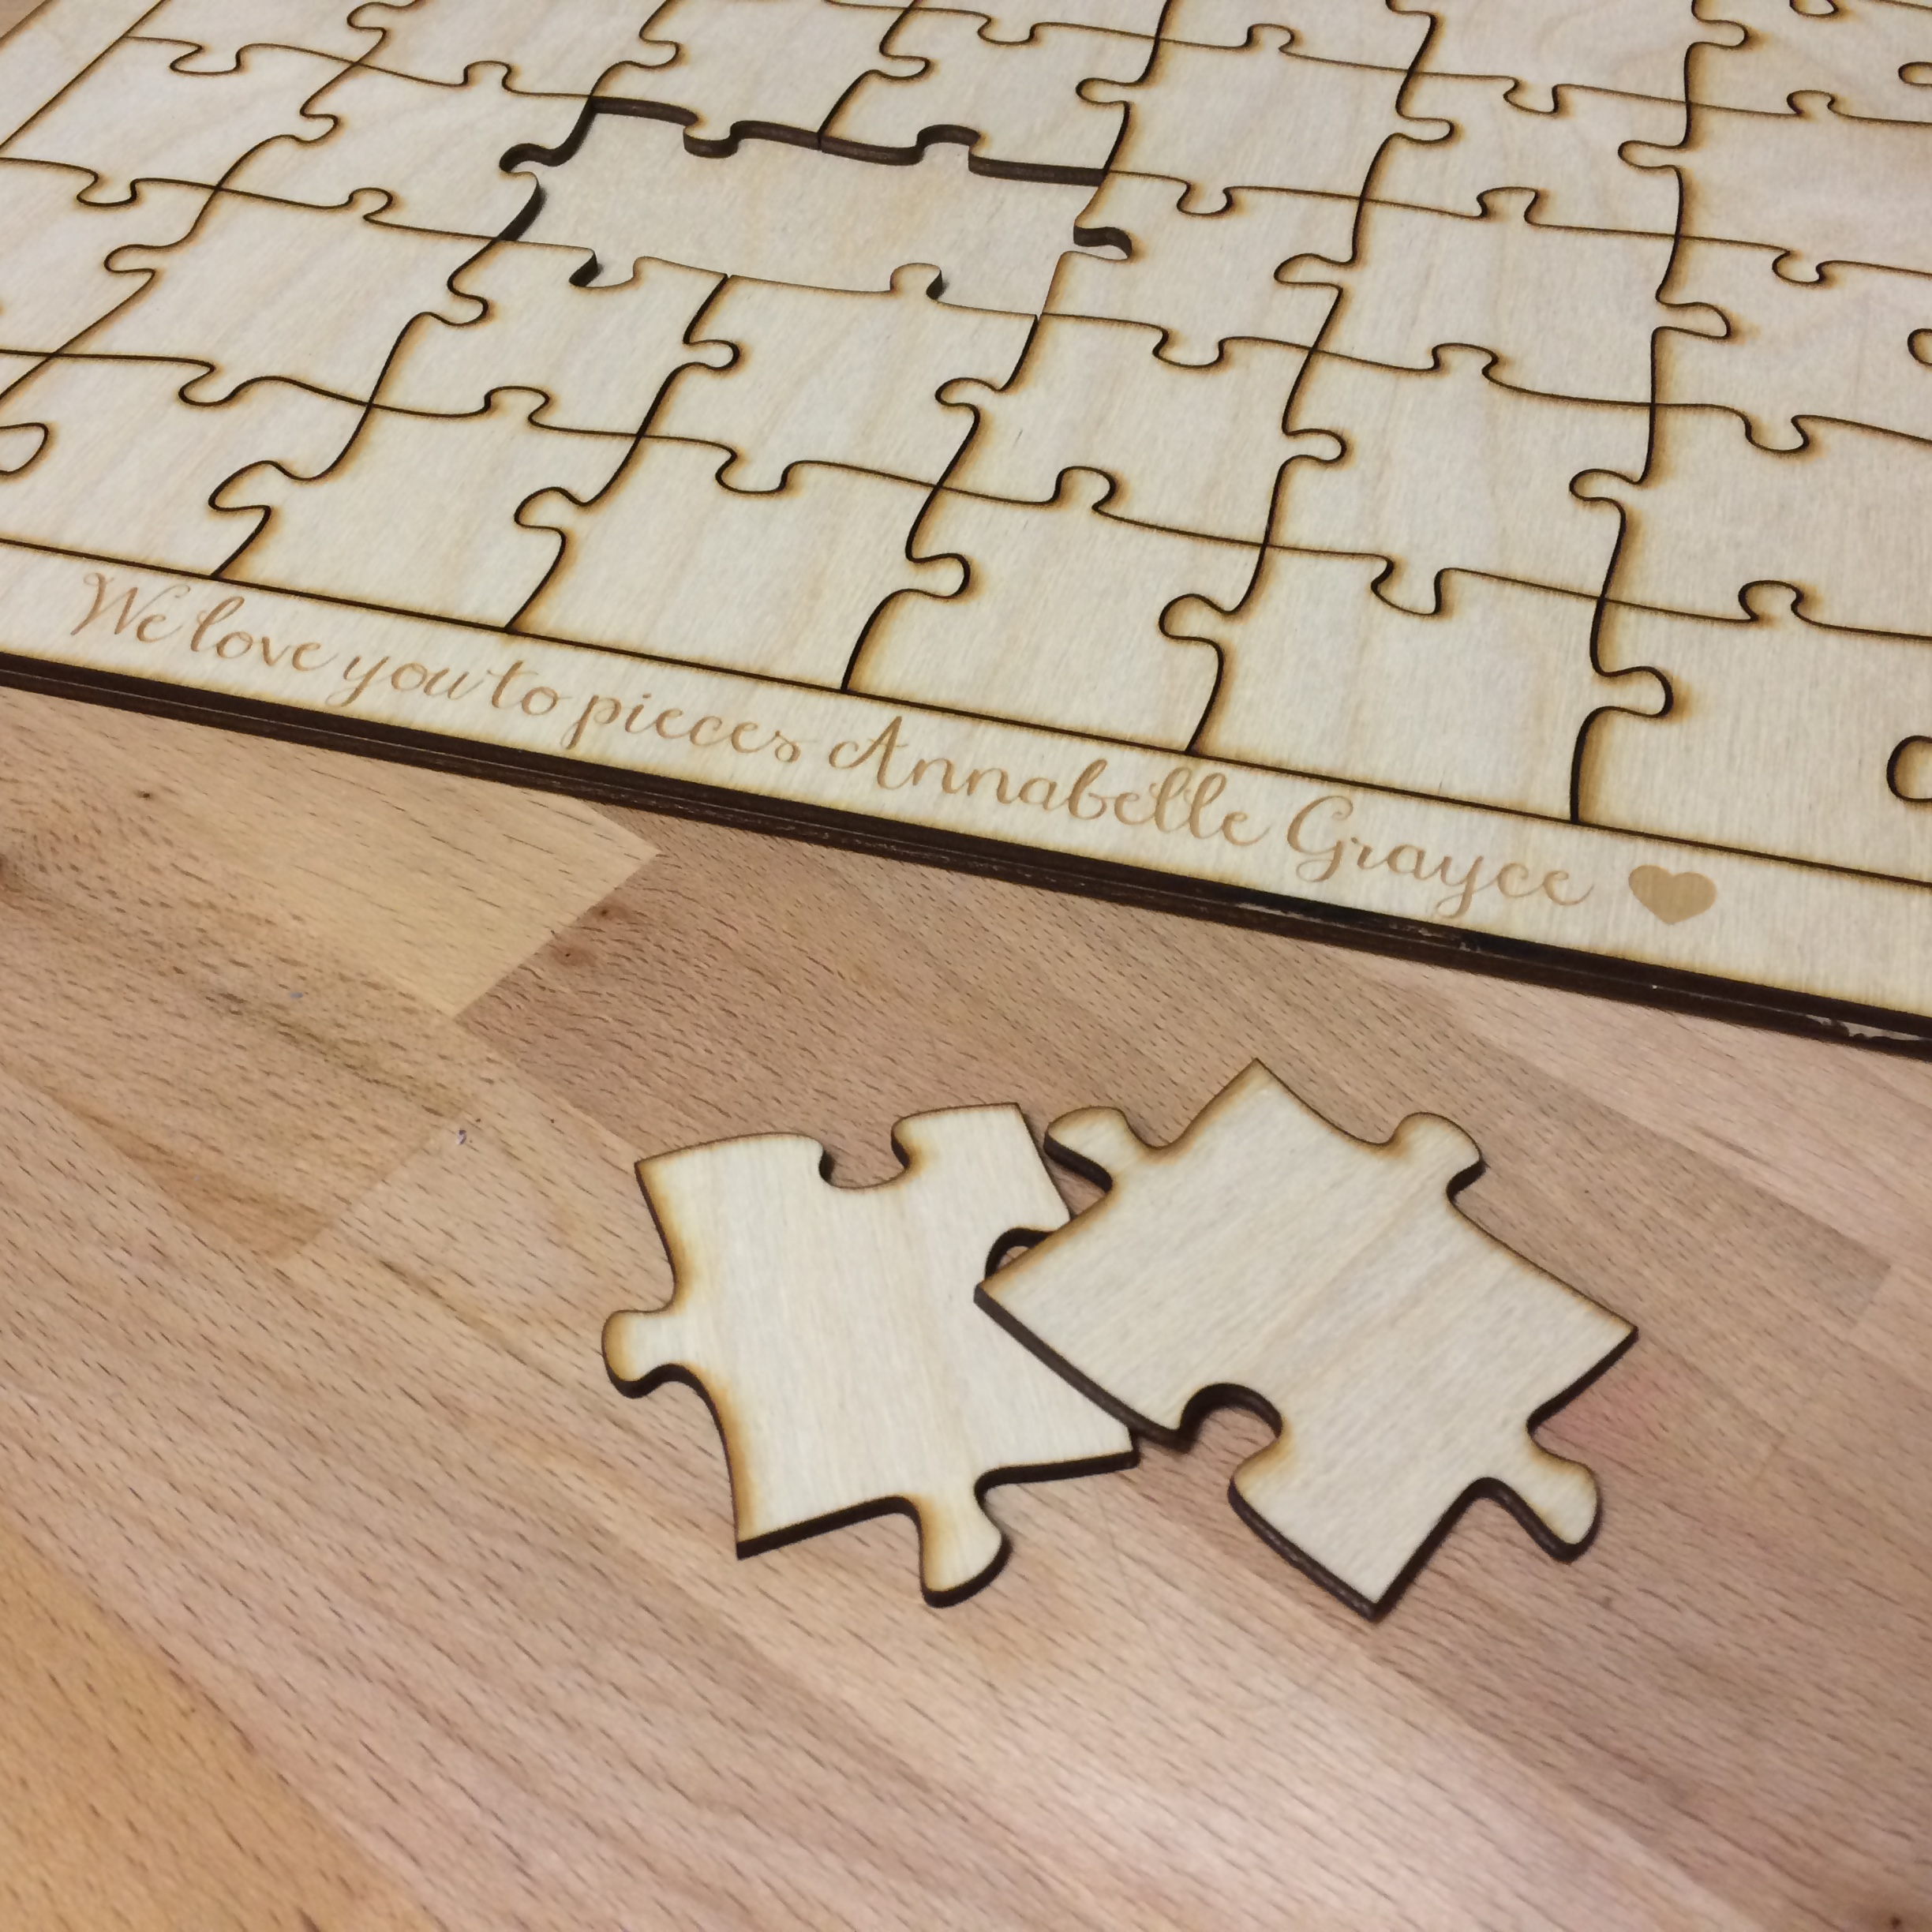 100 Piece Blank Wooden Puzzle Guest Book Alternative 16x16 On Storenvy